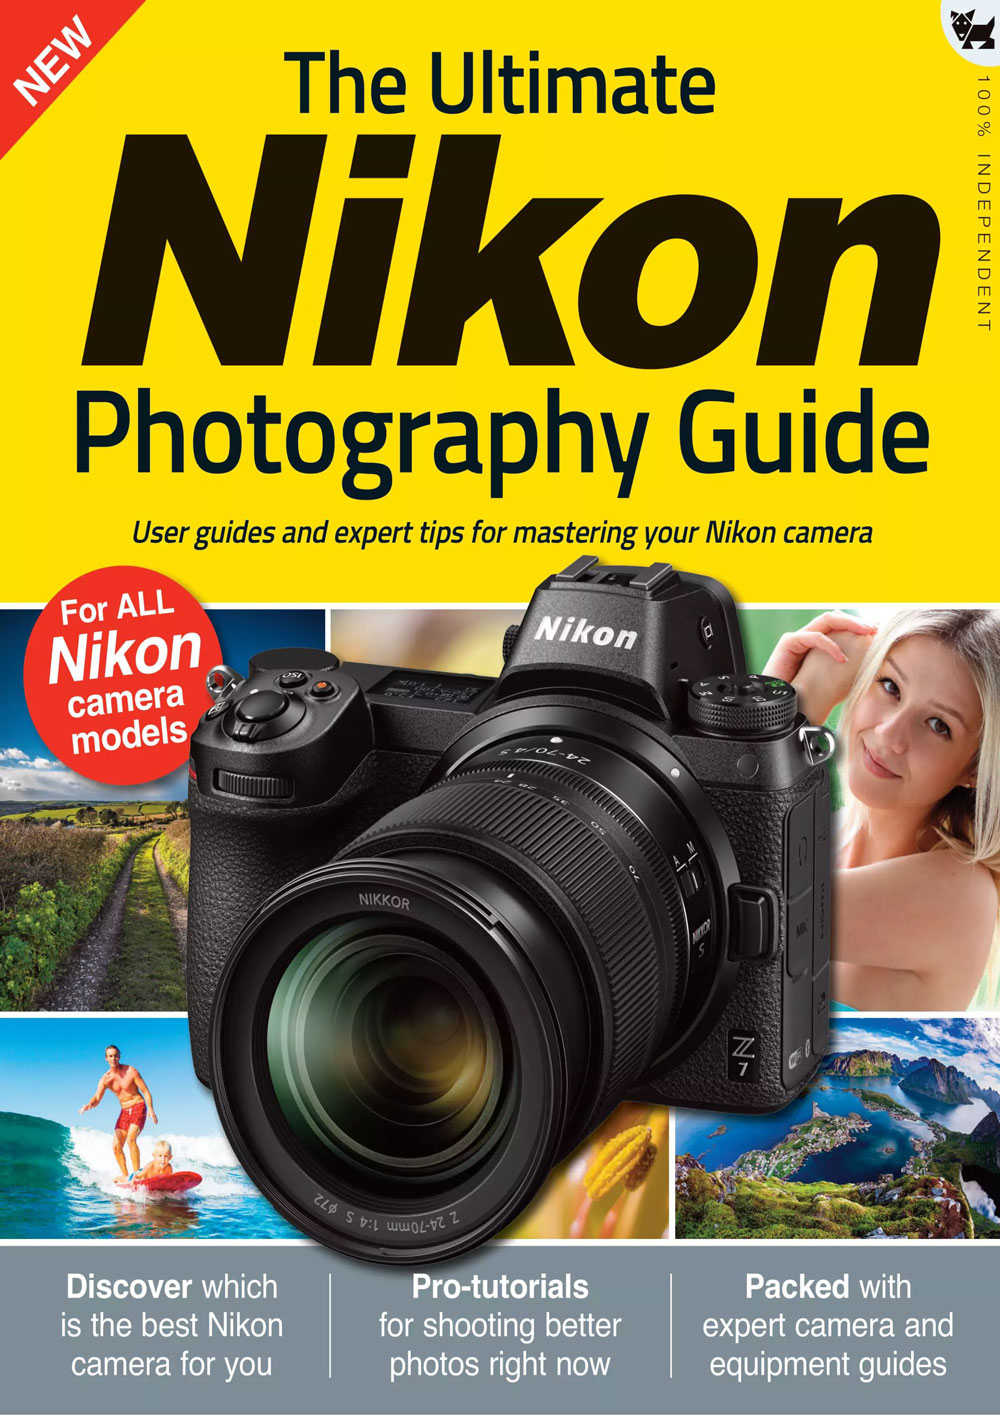 دانلود مجله The Ultimate Nikon Photography Guide